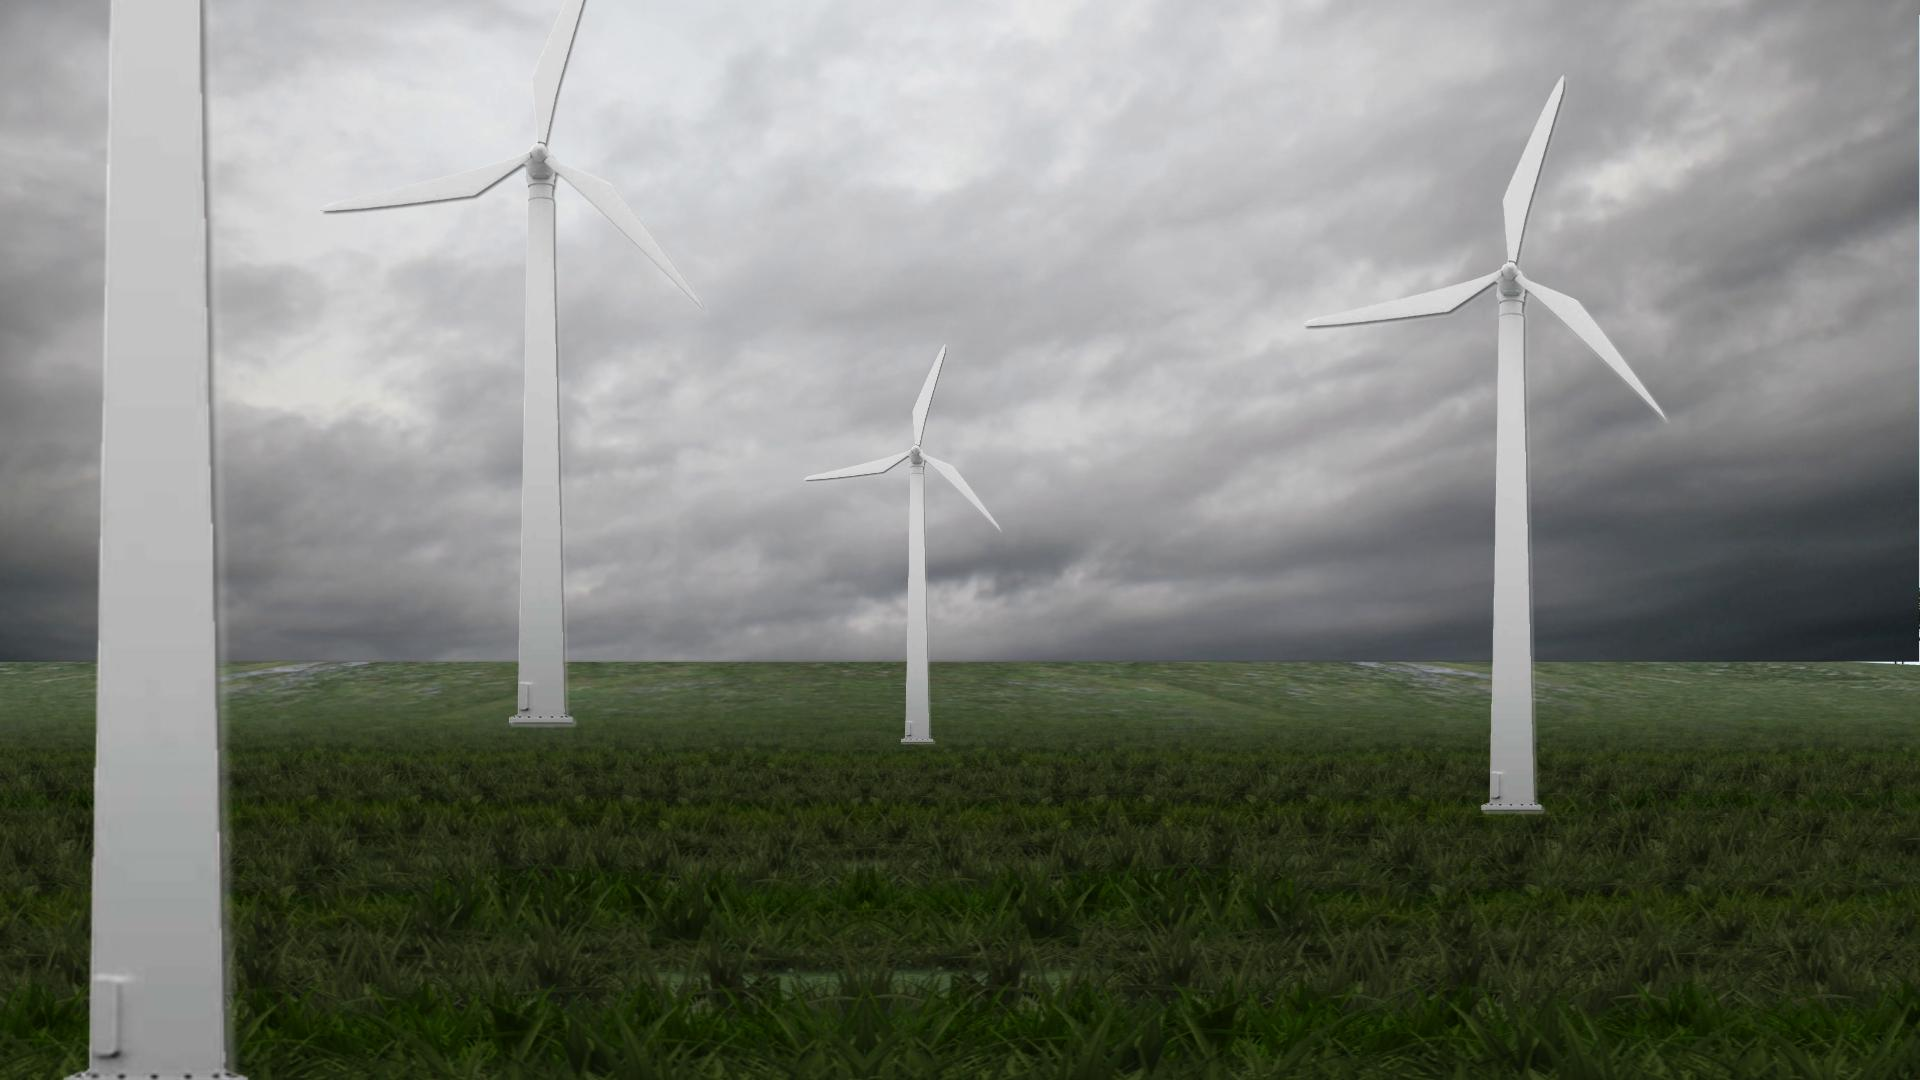 Boone County leaders schedule public hearings to discuss wind farm regulations - ABC17NEWS